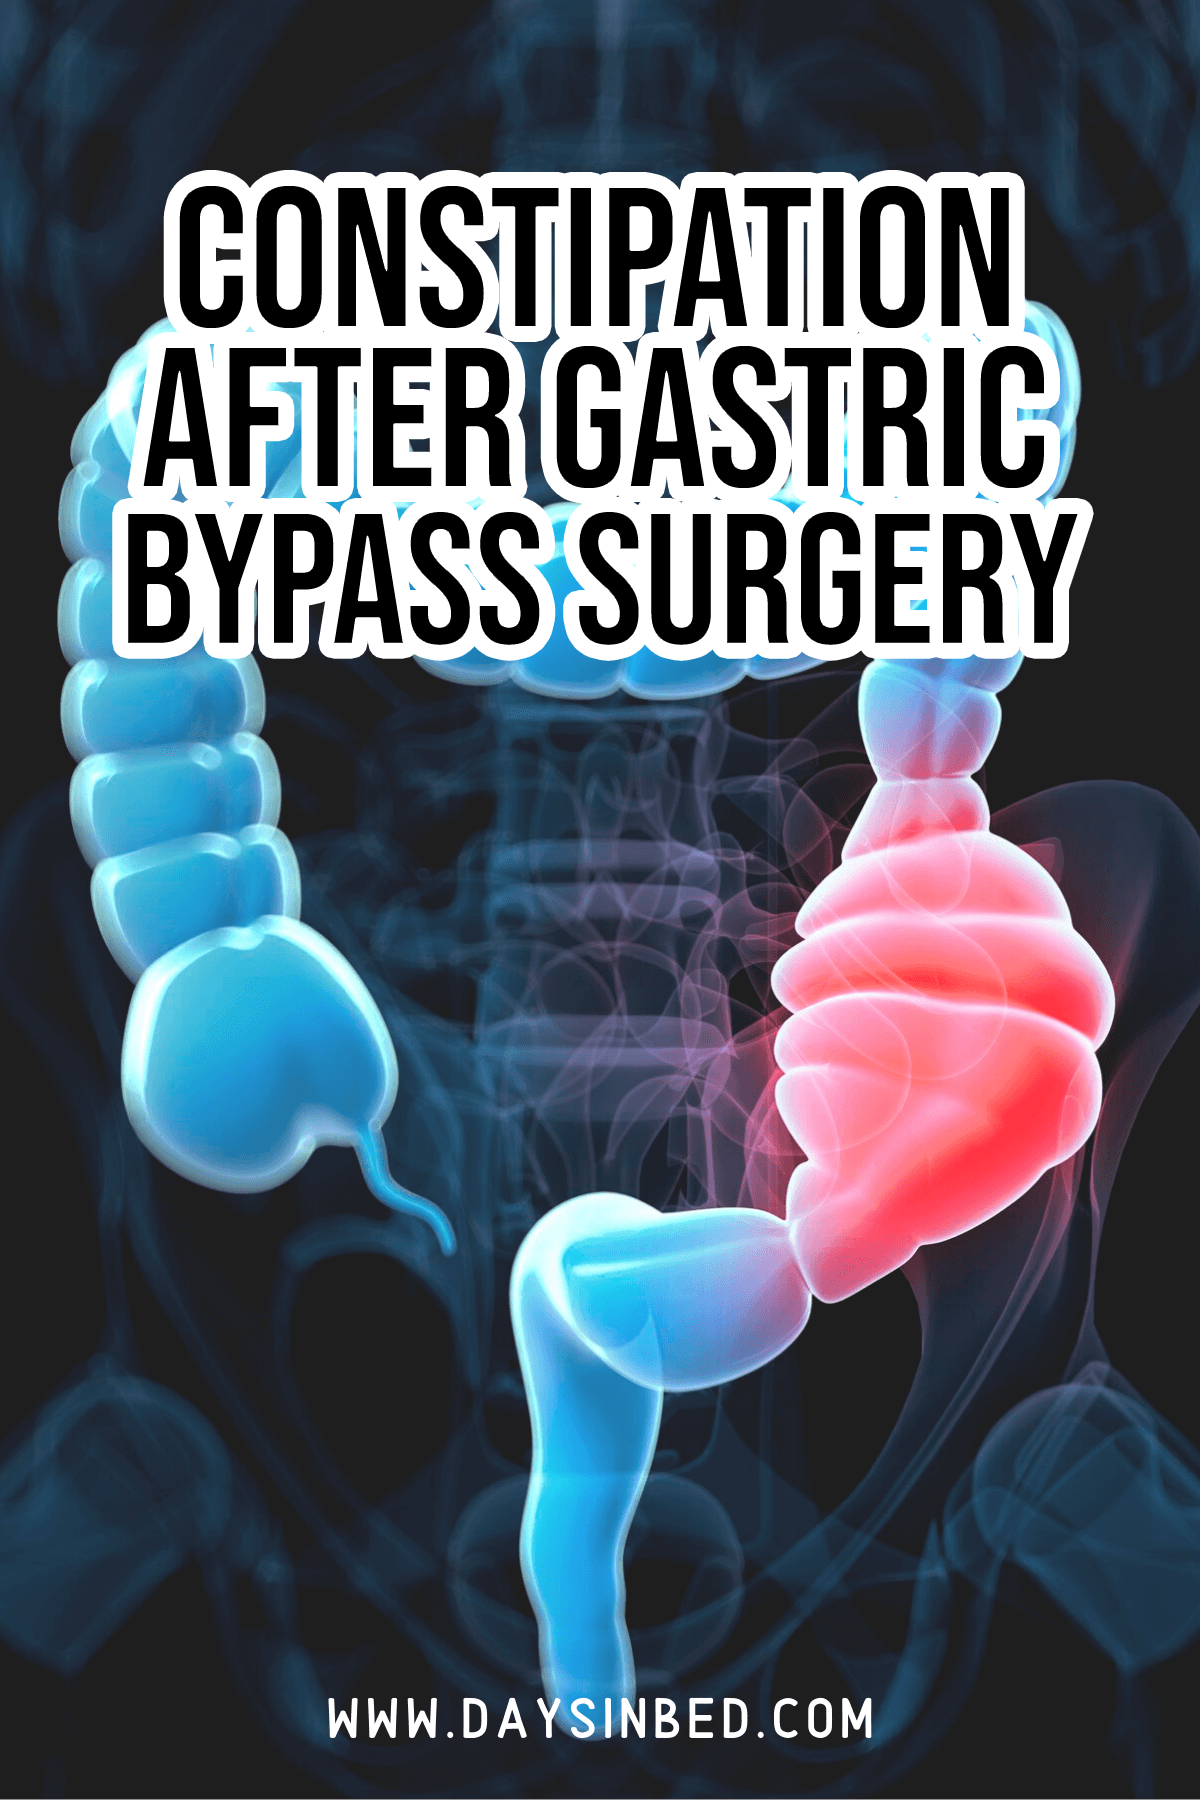 constipation after gastric bypass surgery